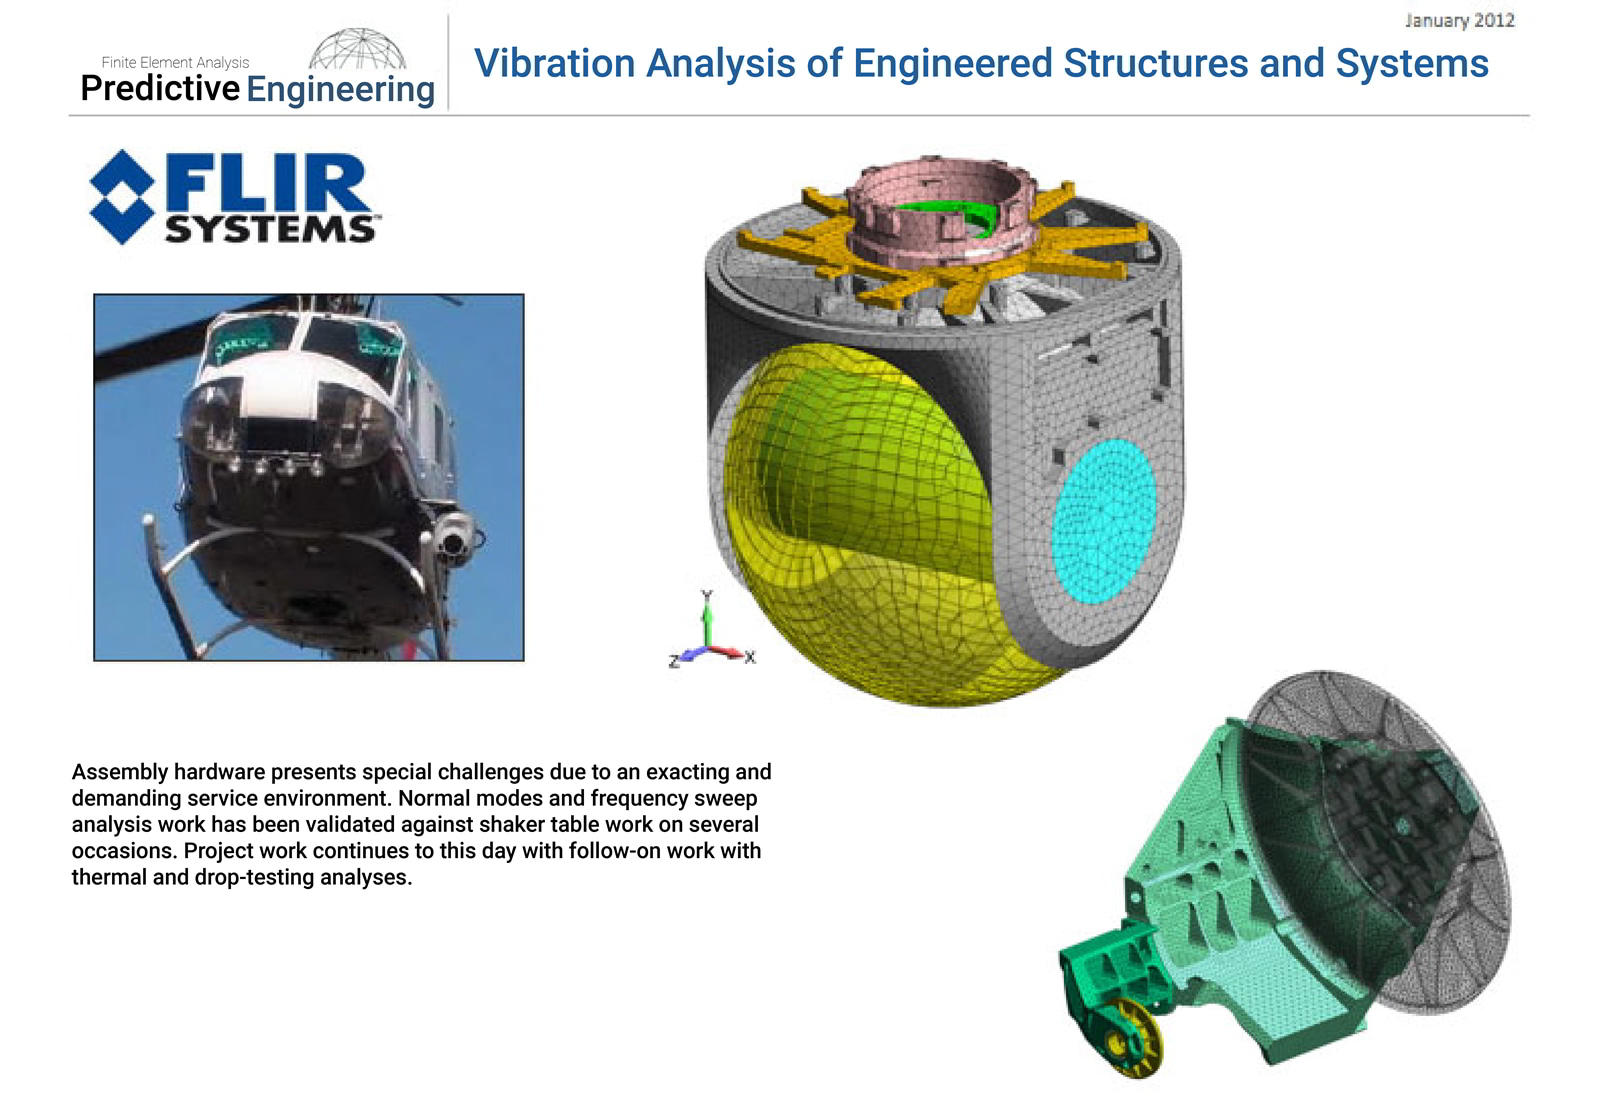 Aviation hardware presents special challenges for vibration analysis due to an exacting and demanding service environment.  Normal modes and frequency sweep analysis work has been validated against shaker table work on several occasions.